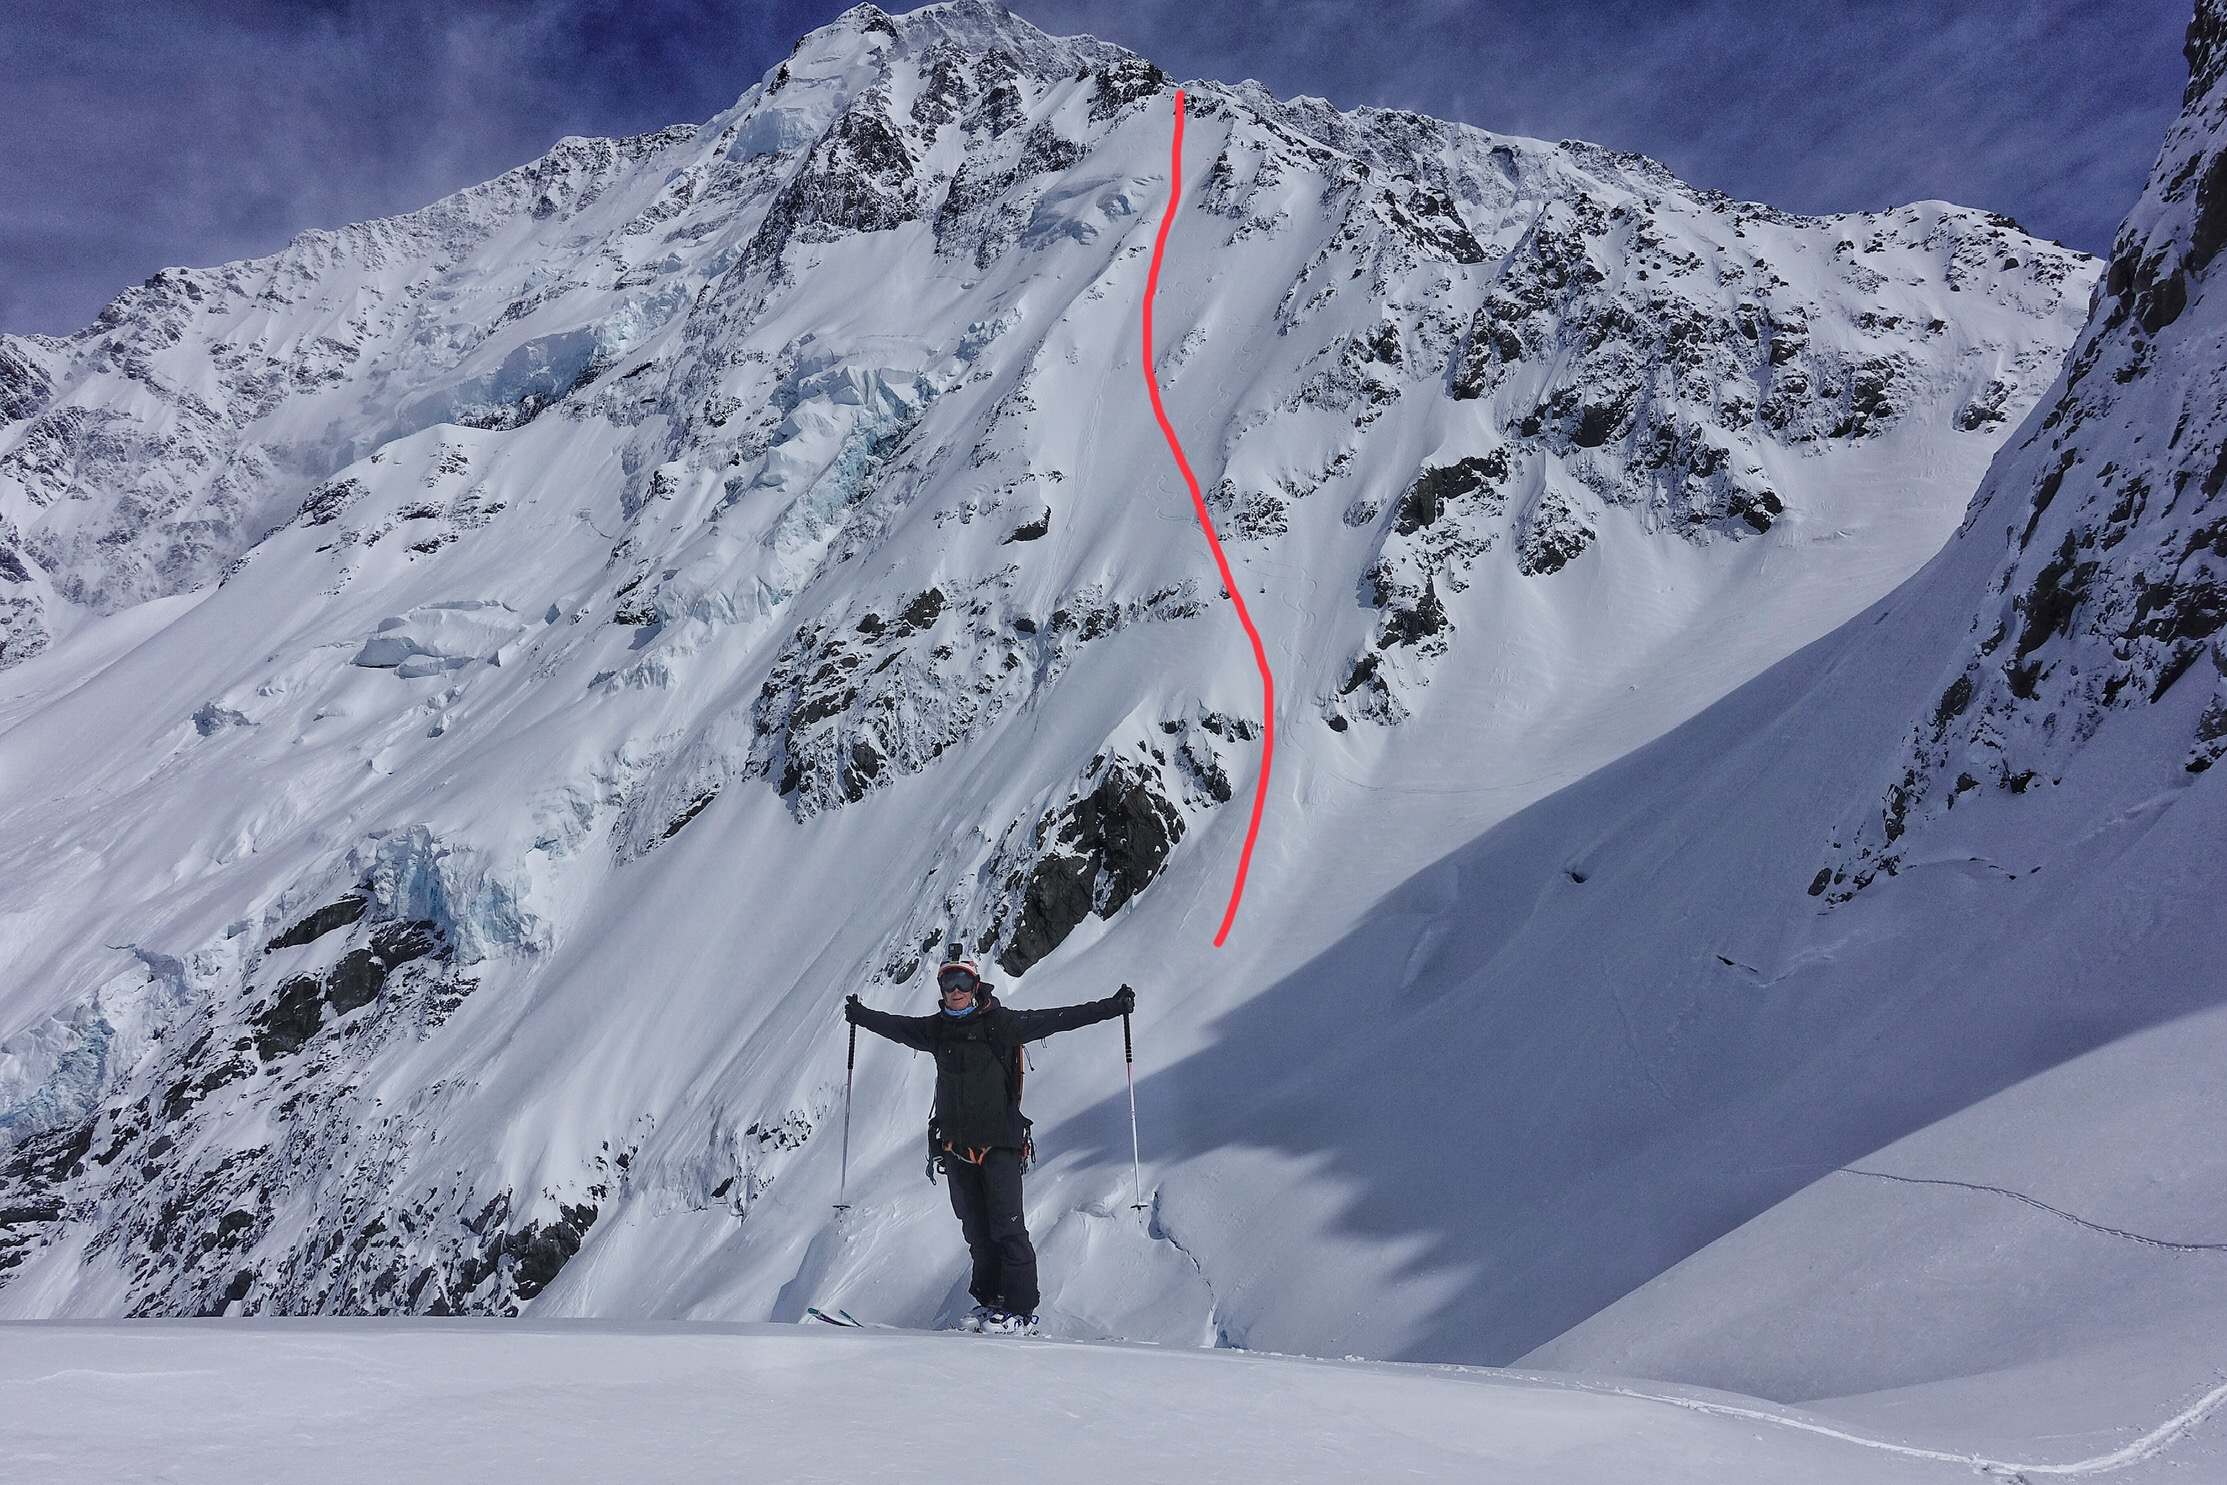 Ross Hewitt after skiing a new line on the Caroline Face of Aoraki / Mount Cook NZ by Dave Searle